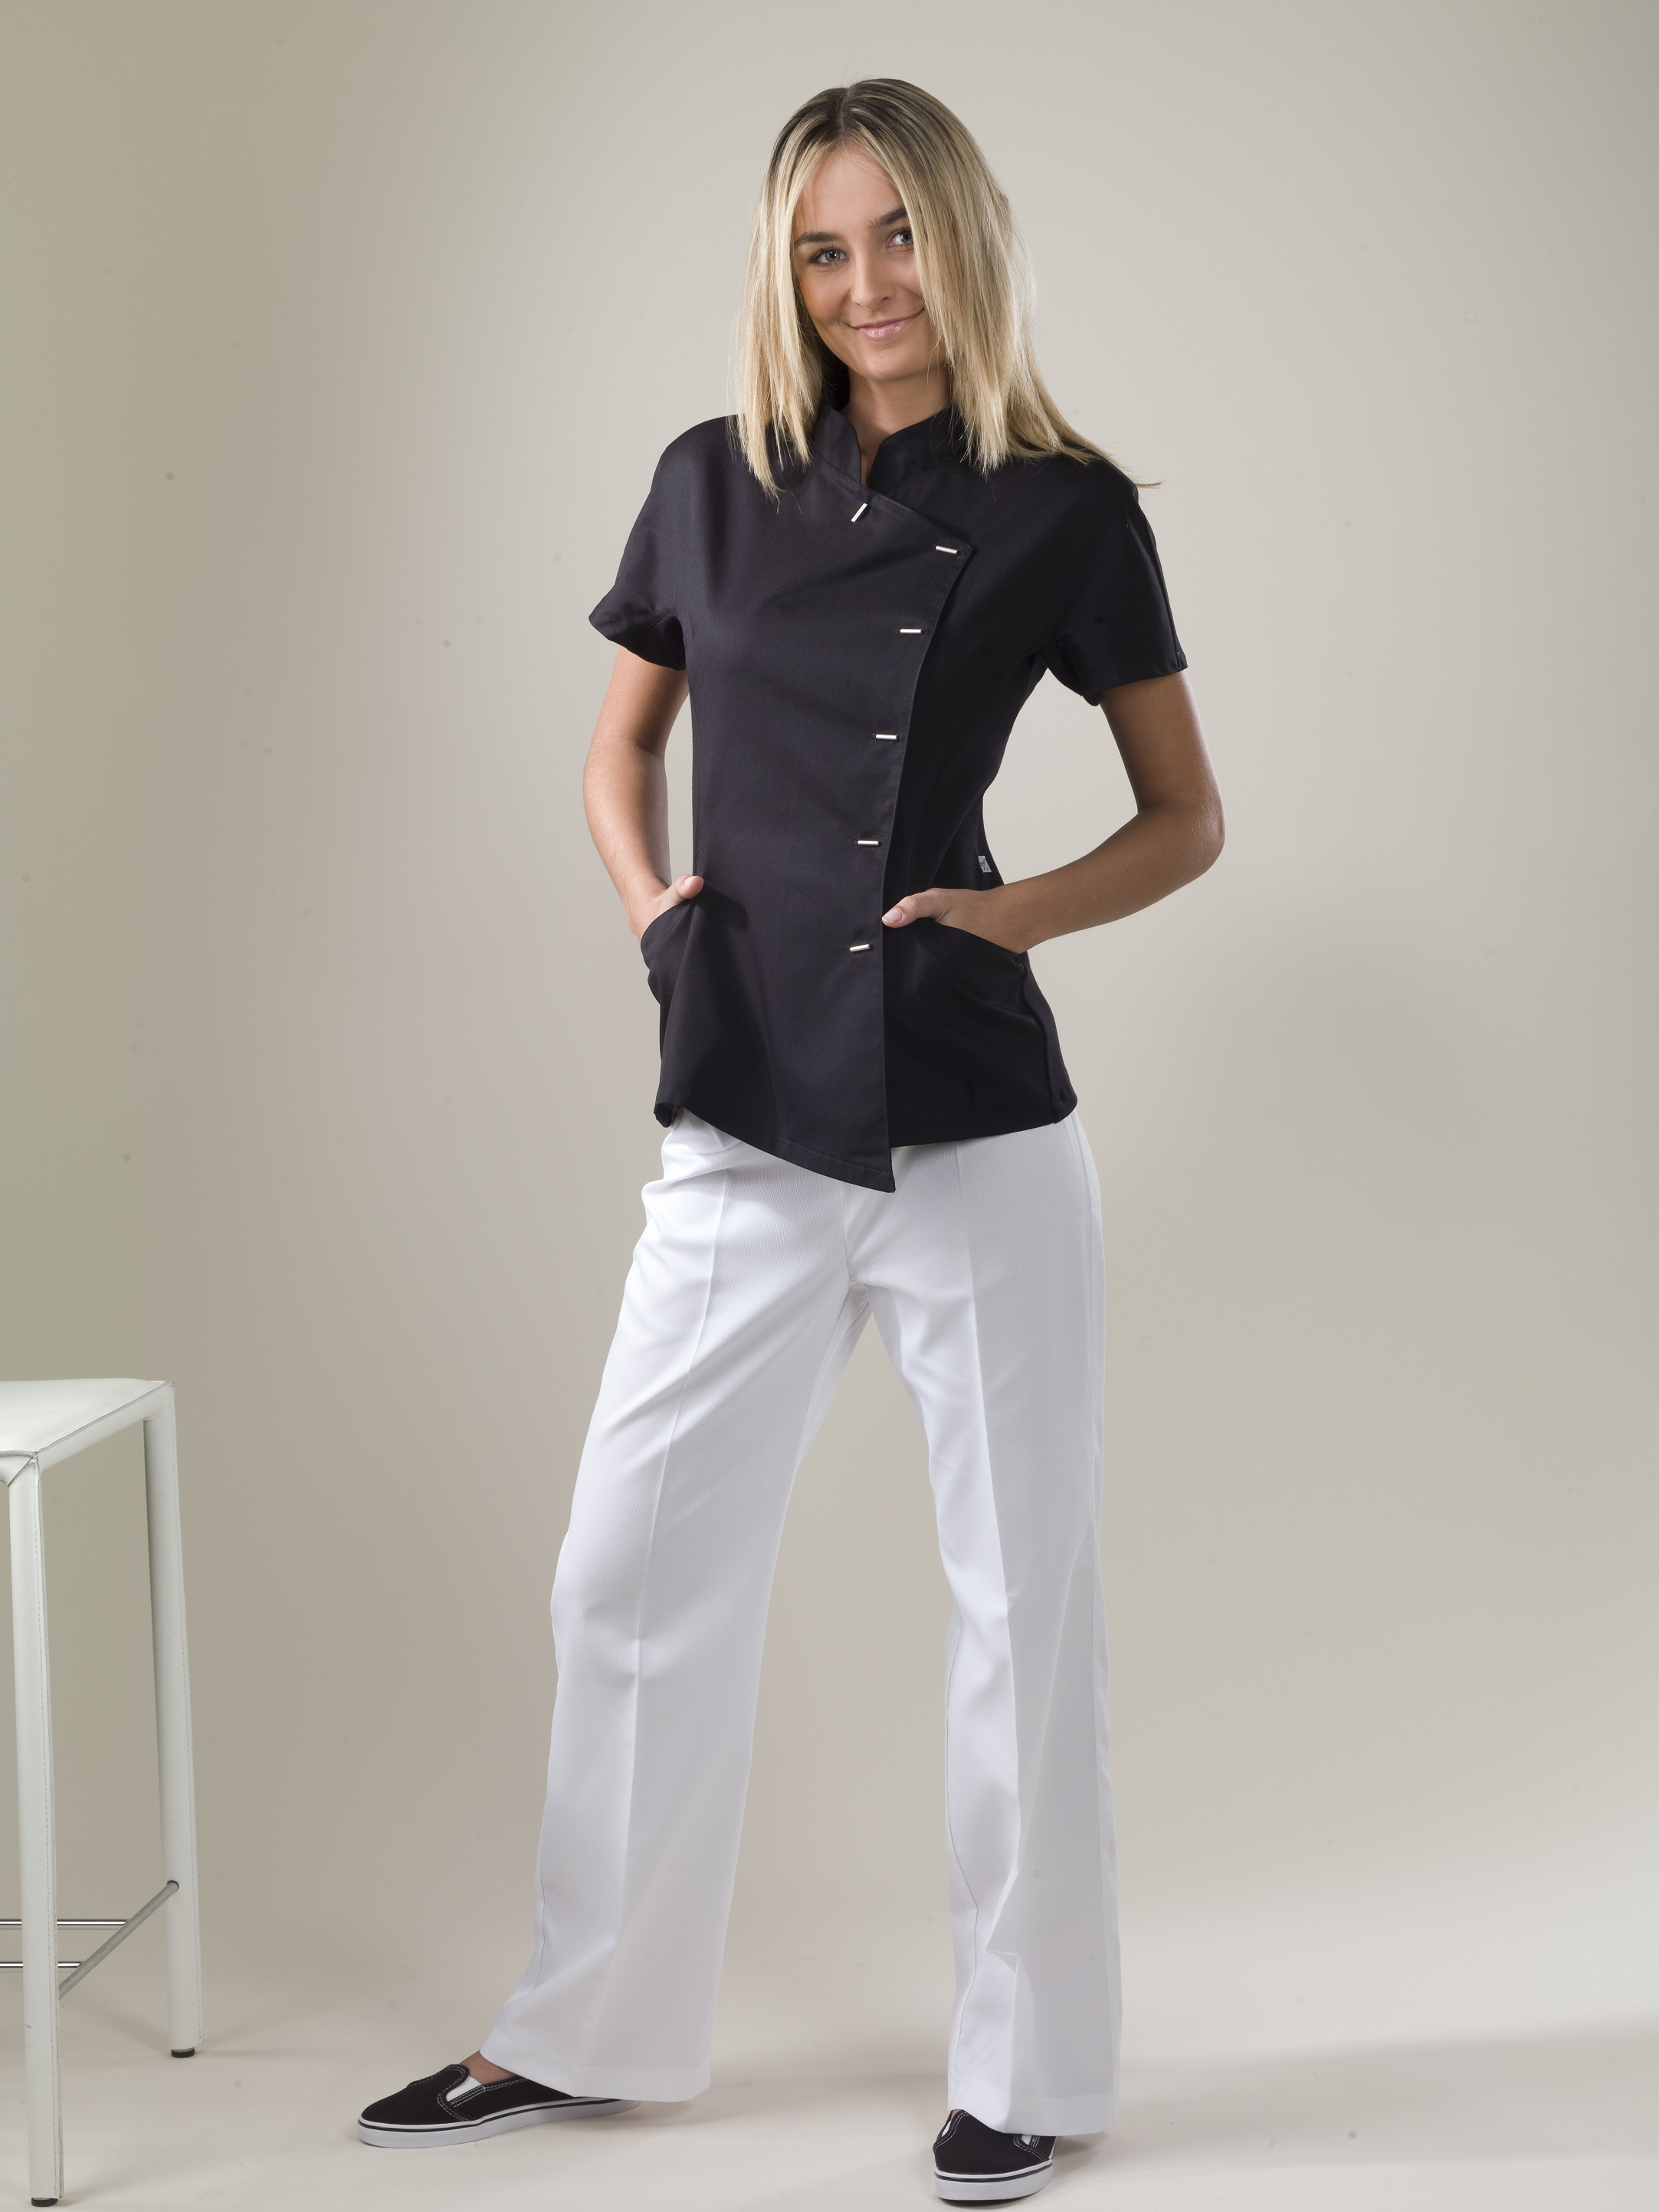 Java top monique mathieu paris for Spa uniform norge